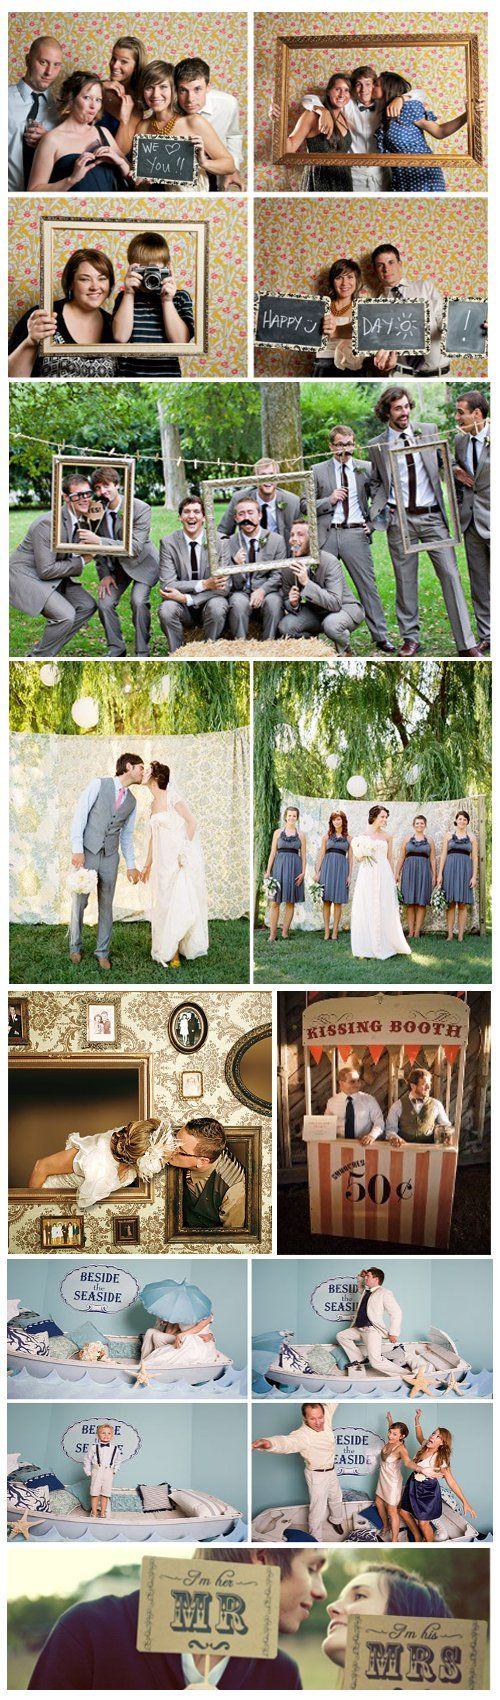 Having a photo booth or professional photographer to help create a photo guest book instead of just having them sign it. And picture frames are a great prop to have during your wedding party photos